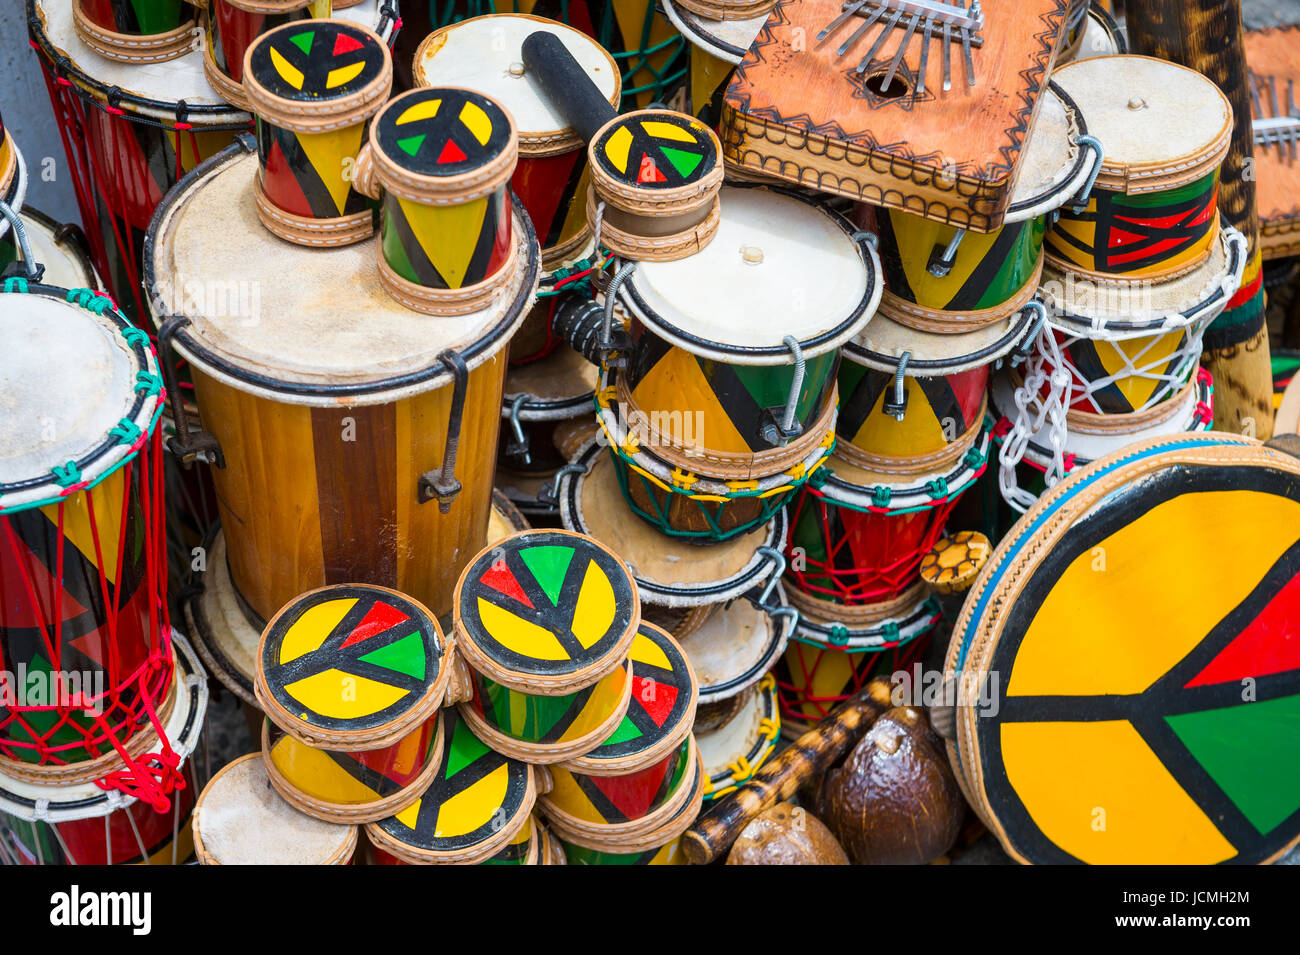 Afro-Brazilian drums and musical instruments stacked up in historic tourist district of Pelourinho, Salvador, Brazil. - Stock Image